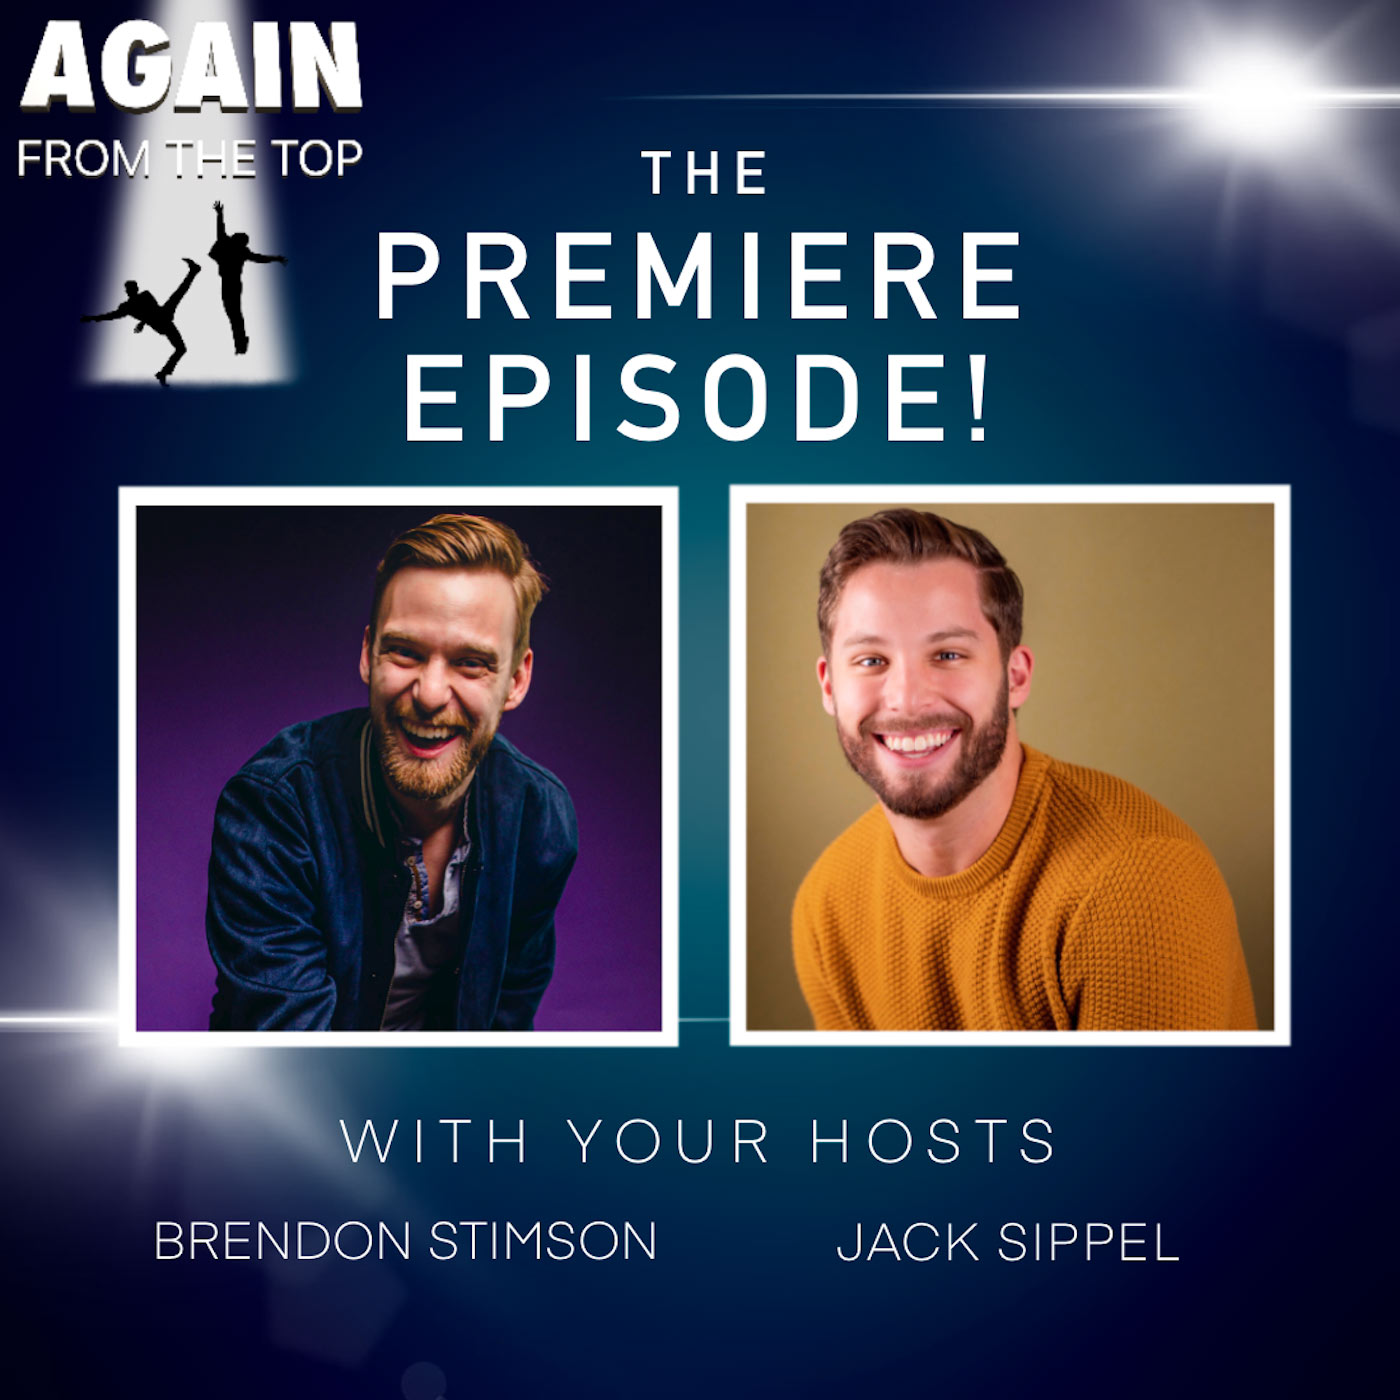 S1/Ep1: GET OUT YOUR TAP SHOES, FRANCIS! BRENDON AND JACK ARE DOING A SHOW!